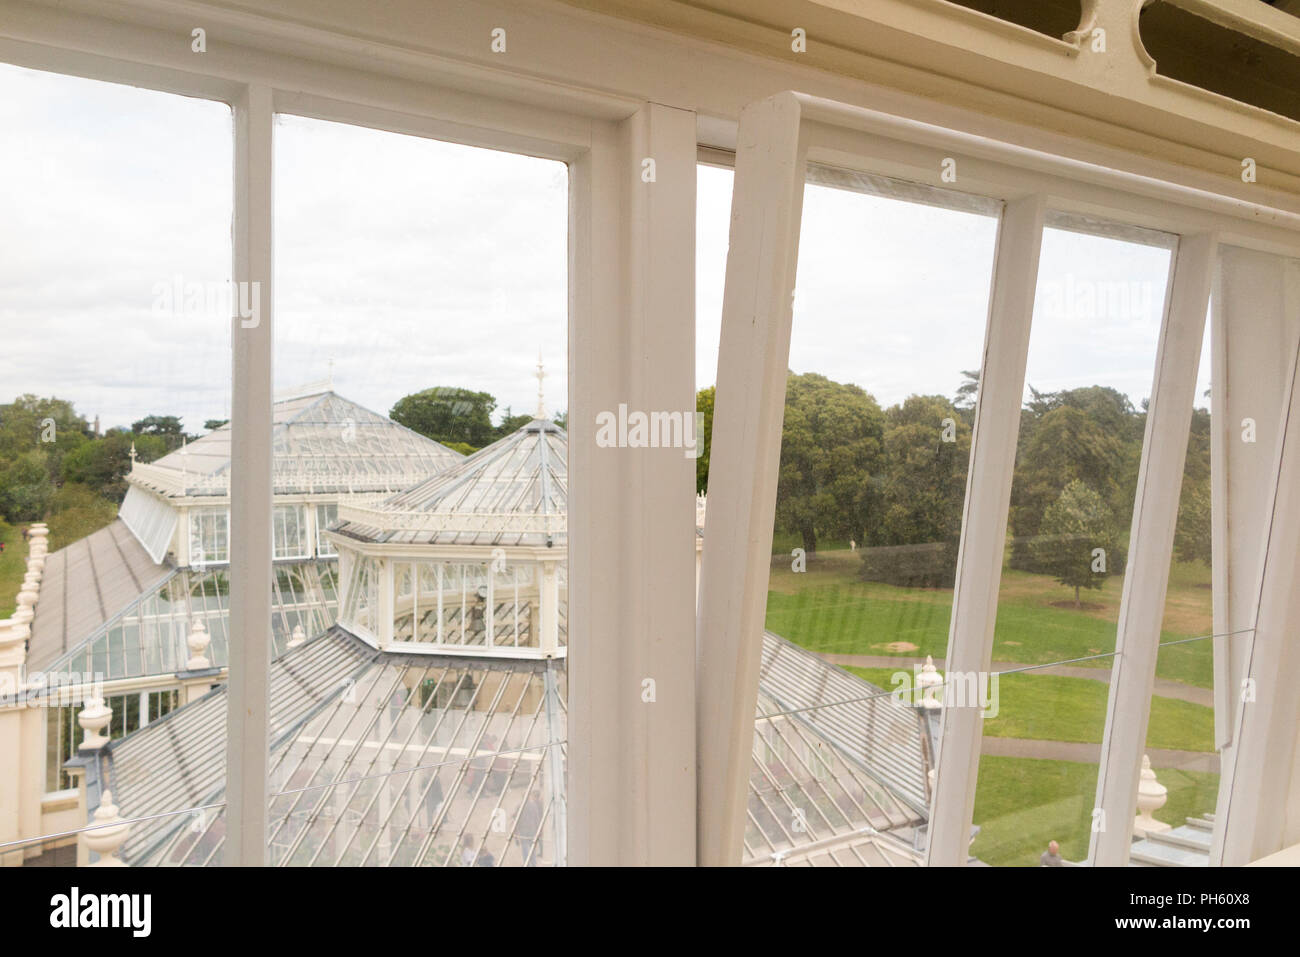 New glazing wooden / wood / timber replacement glazed windows in the restored Victorian Temperate House at the Royal Botanic Garden, Kew. London. UK Stock Photo